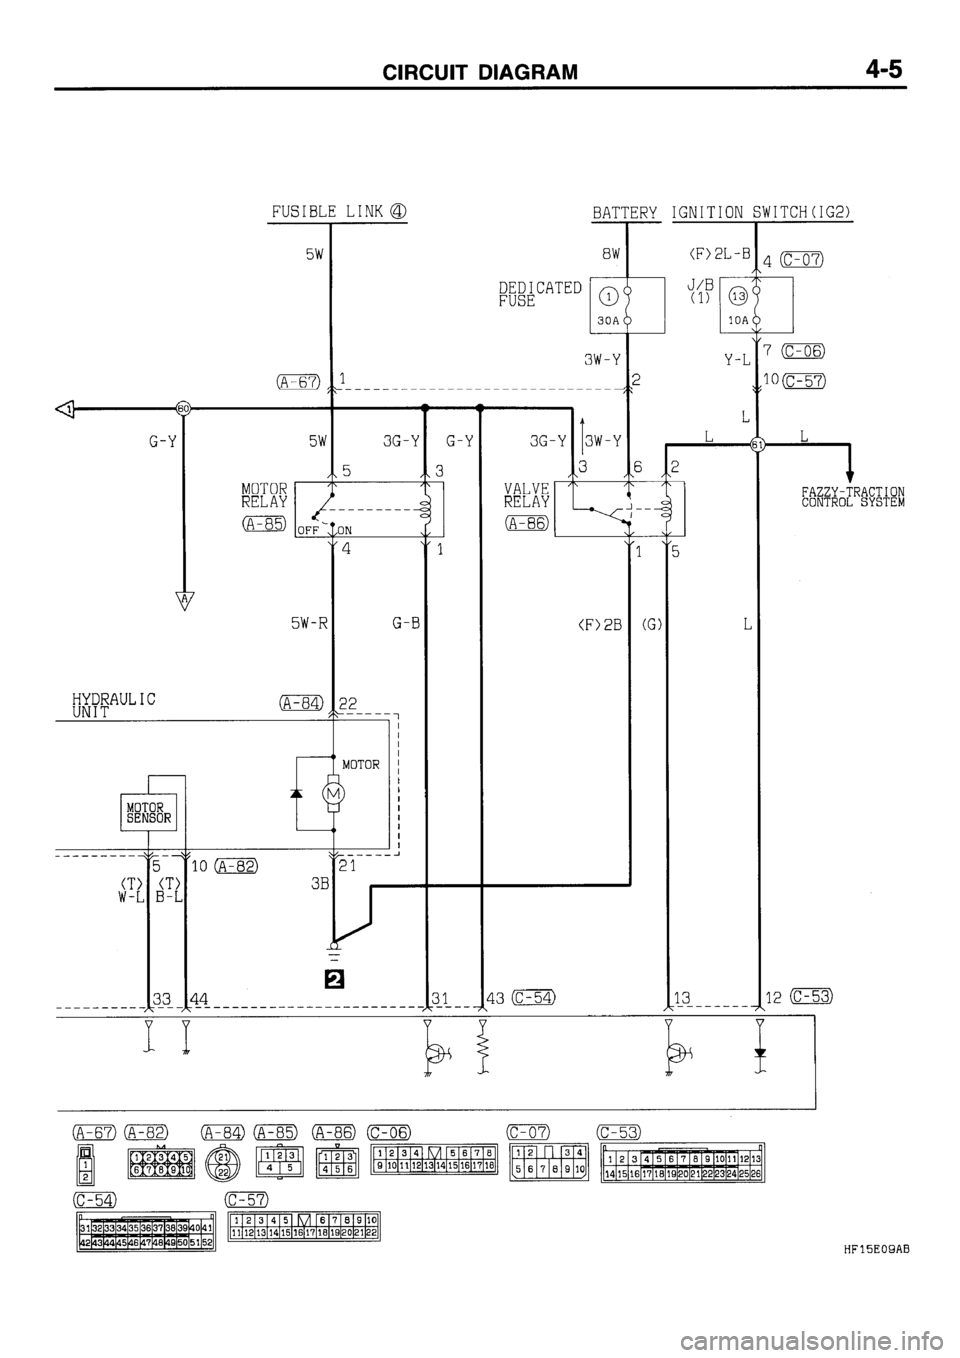 07 galant wiring diagram reese winch wiring diagram acdelco, Wiring diagram